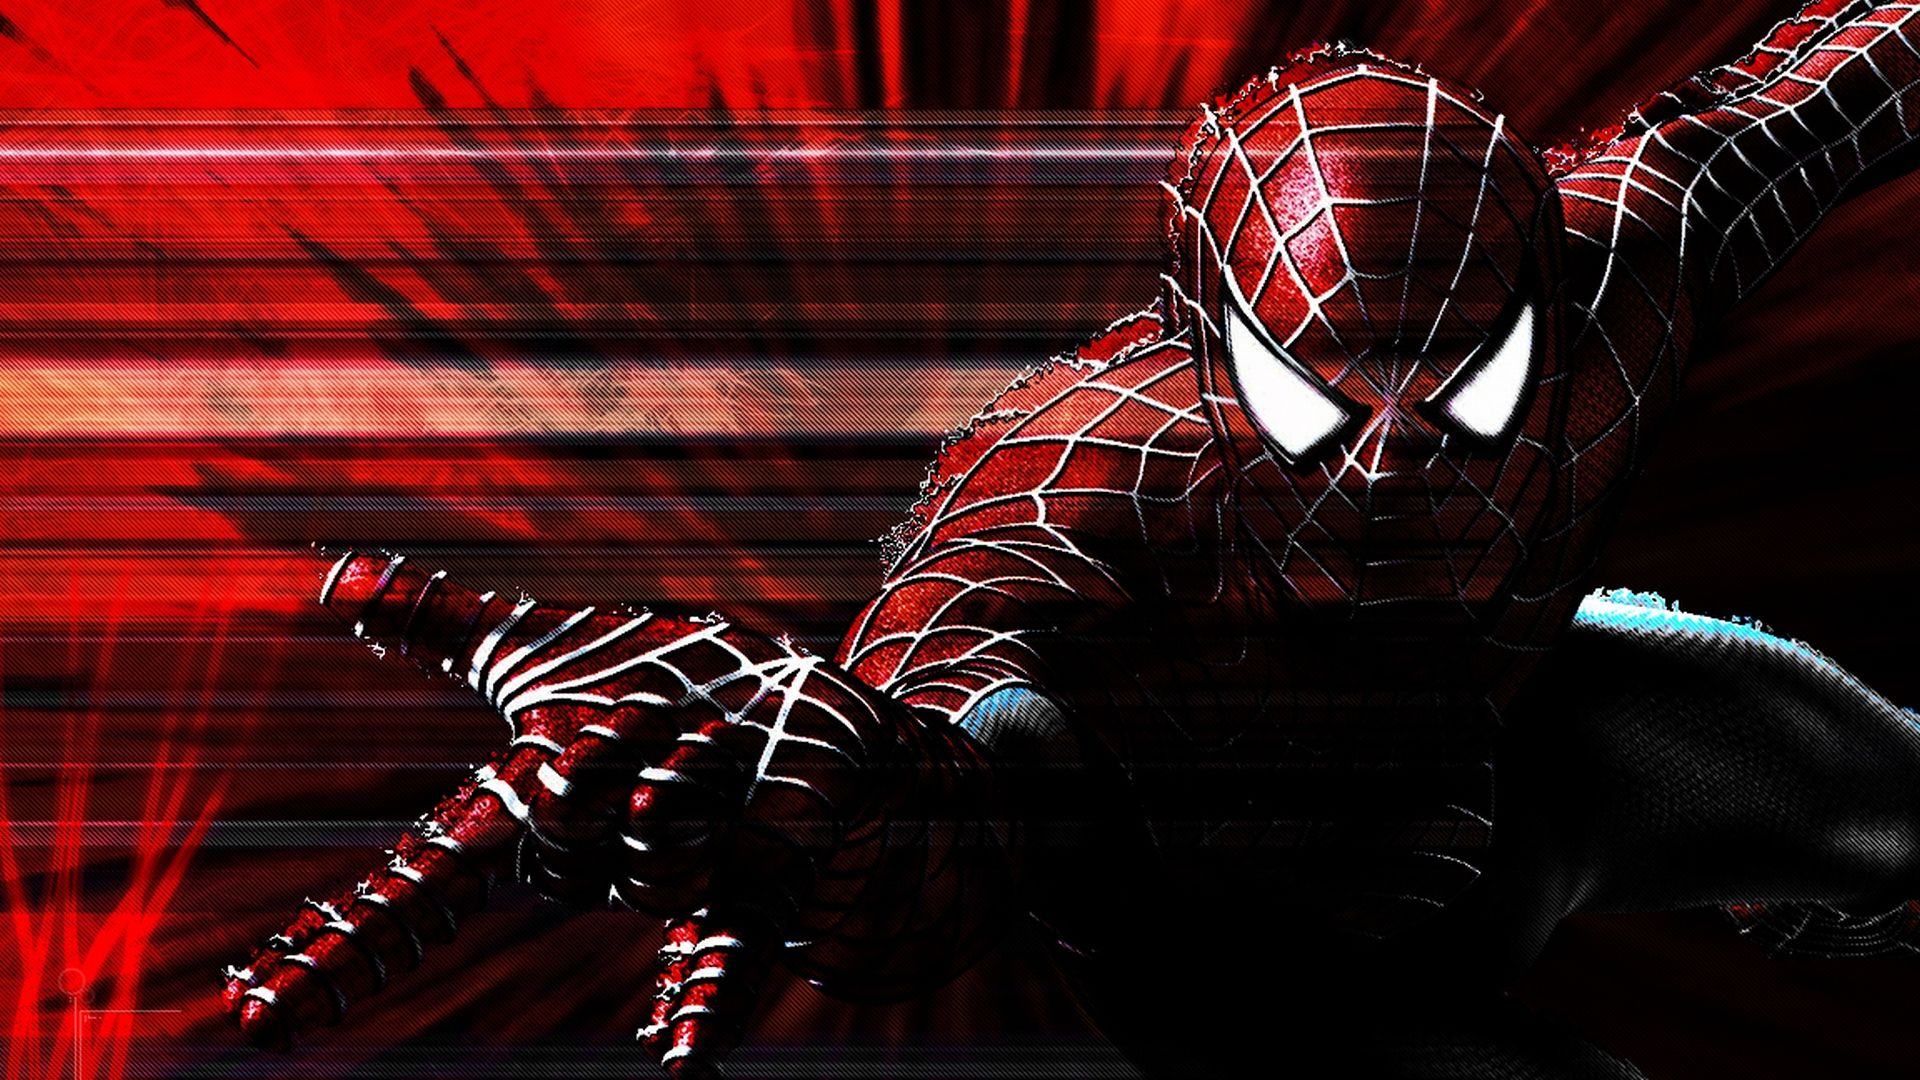 The Amazing Spider Man Laptop Hd Hd 4k Wallpapers